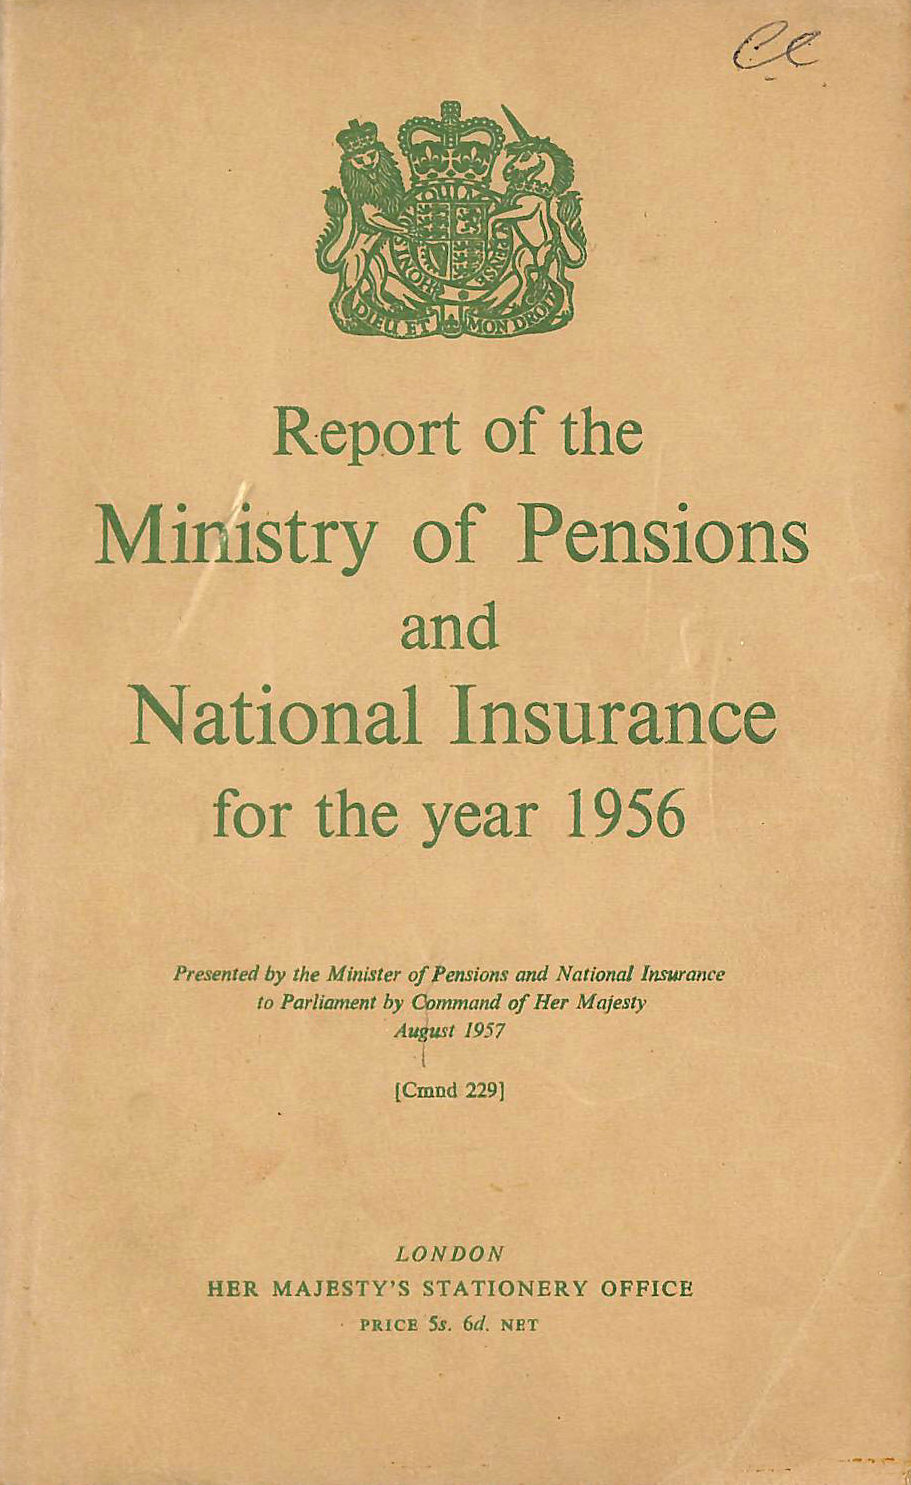 Image for Report of the Ministry of Pensions and National Insurance 1956